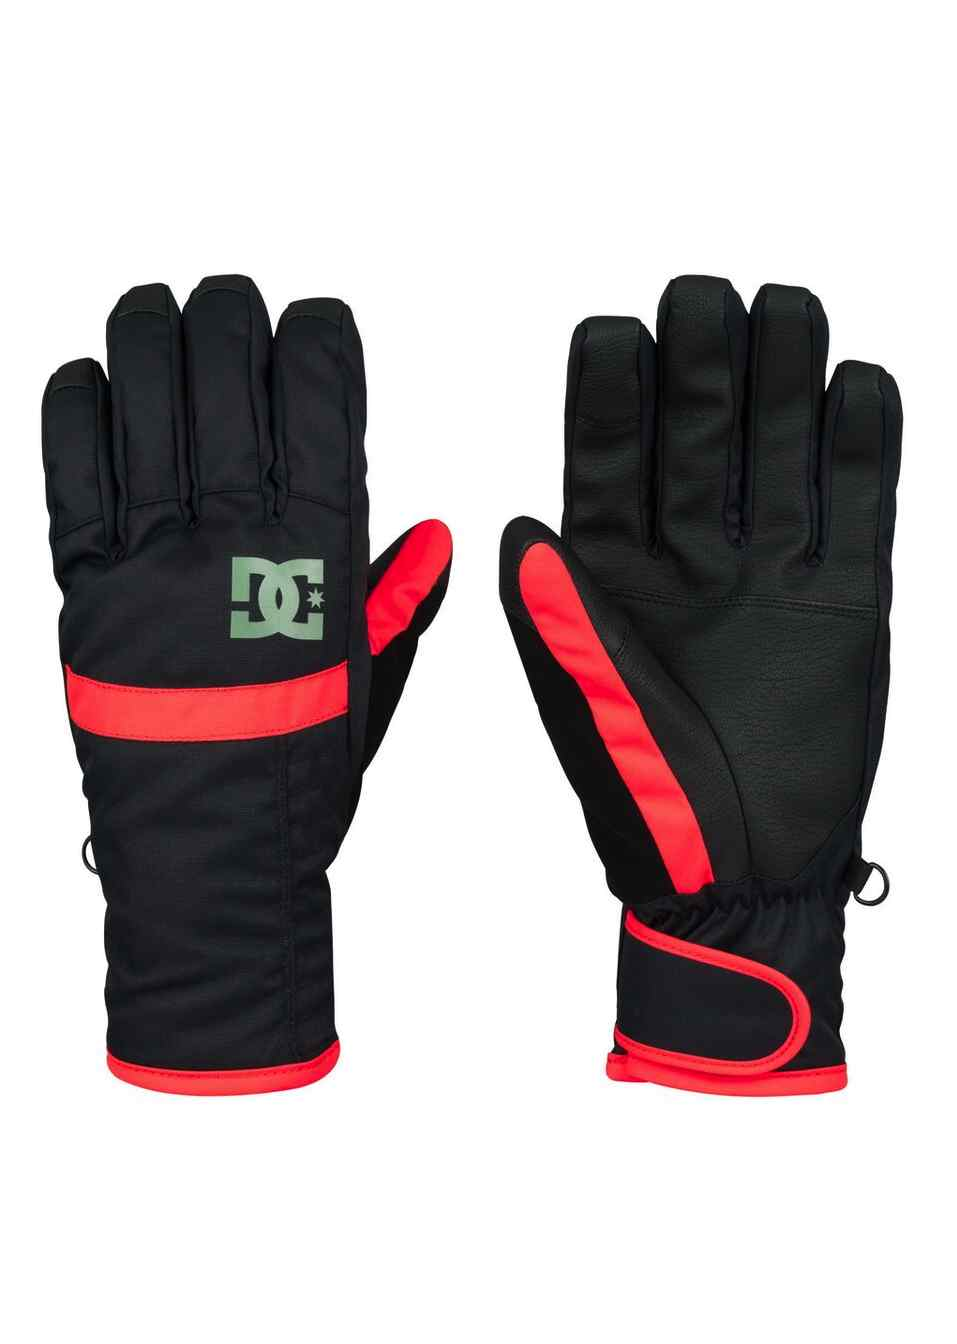 DC SHOES GUANTI SNOWBOARD DONNA SEGER - LM BOARD STORE